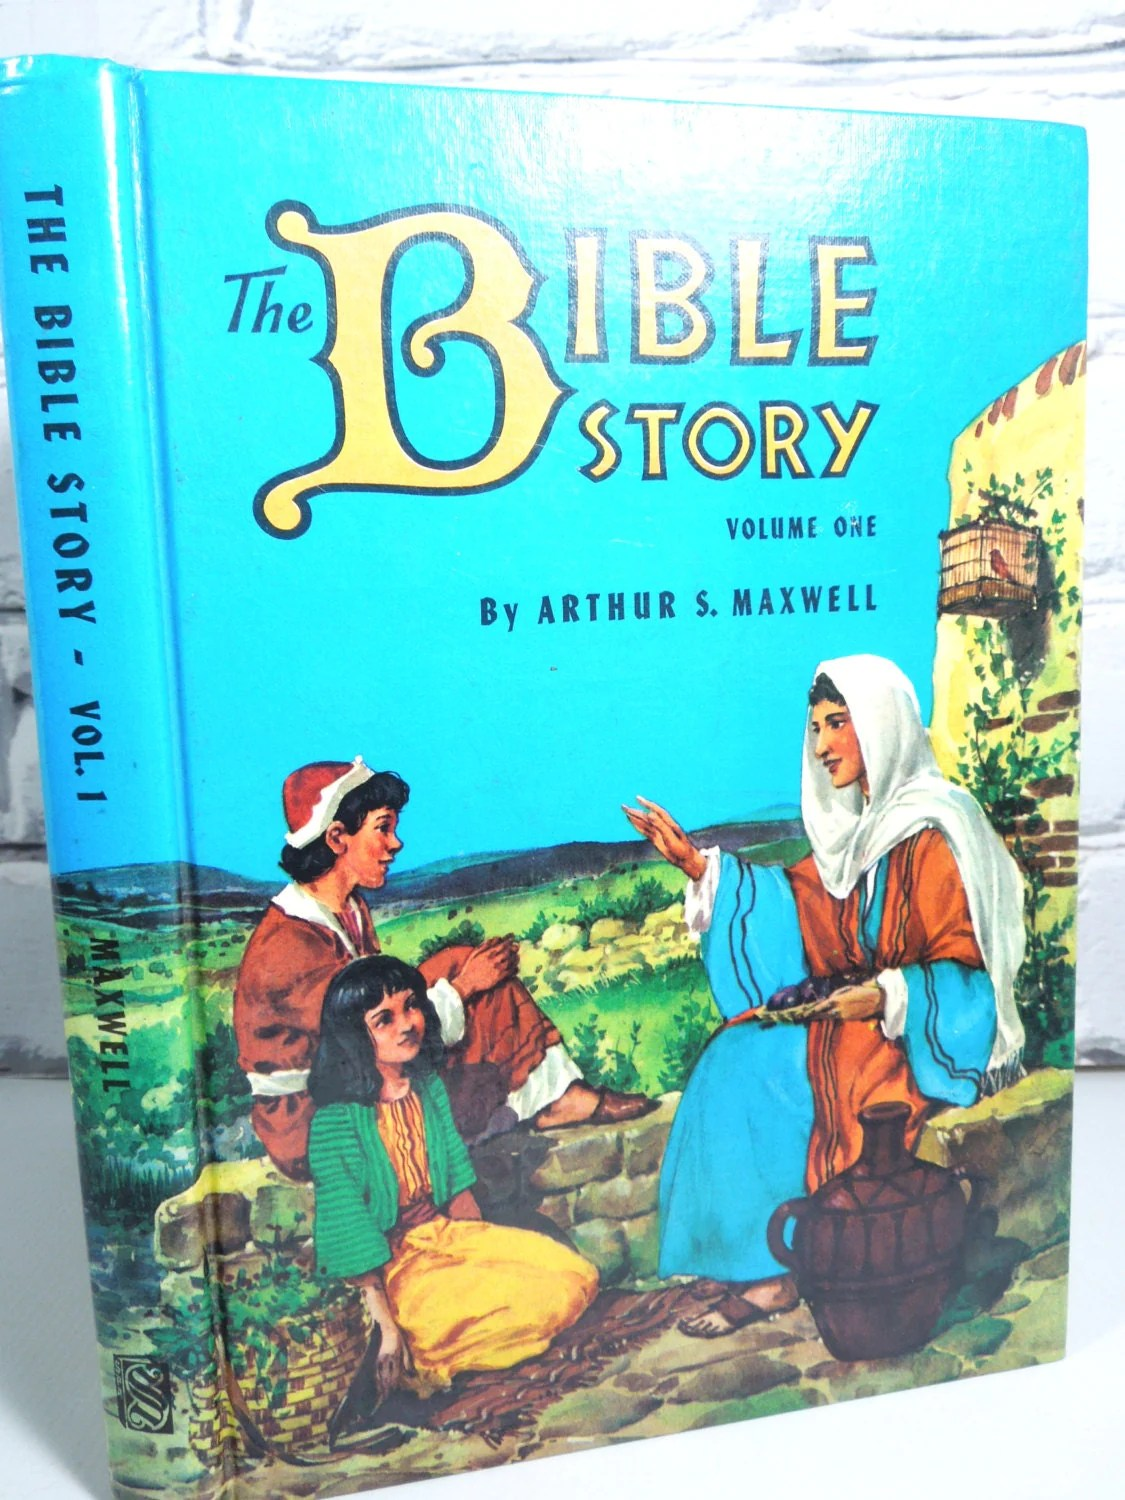 Vintage Children S Book The Bible Story Volume One